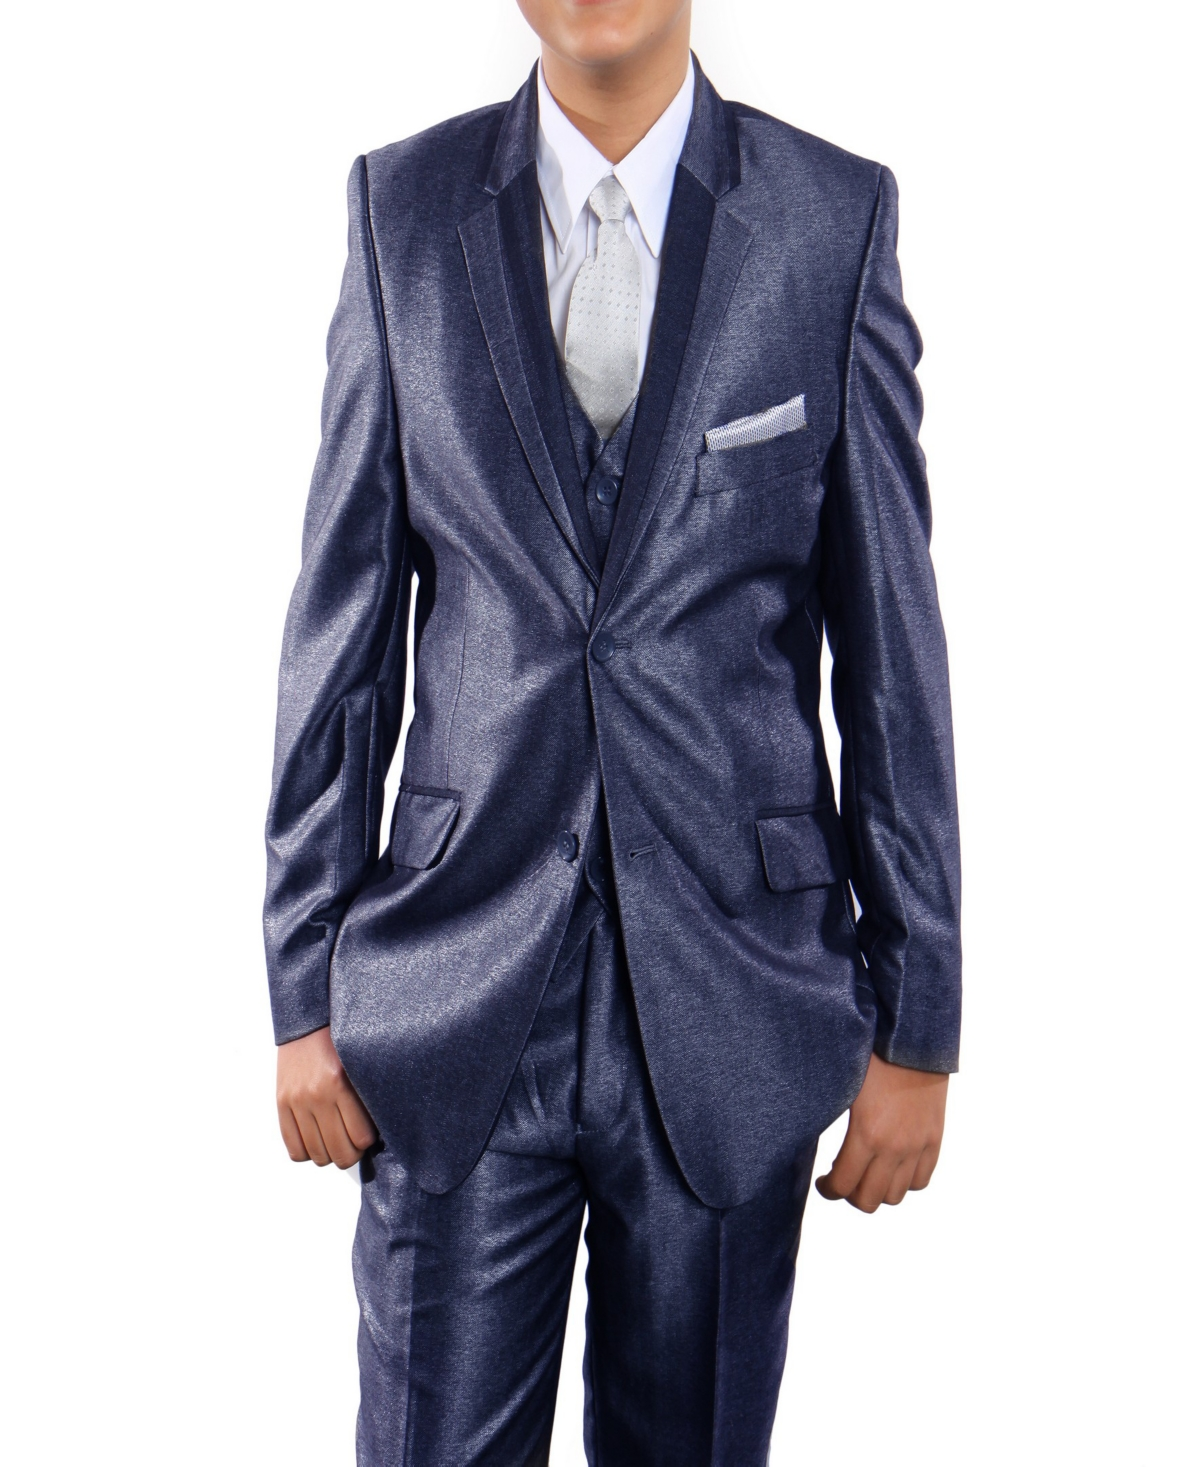 Tazio Notch Lapel Single Breasted 1 Button Vested Suits for Boys